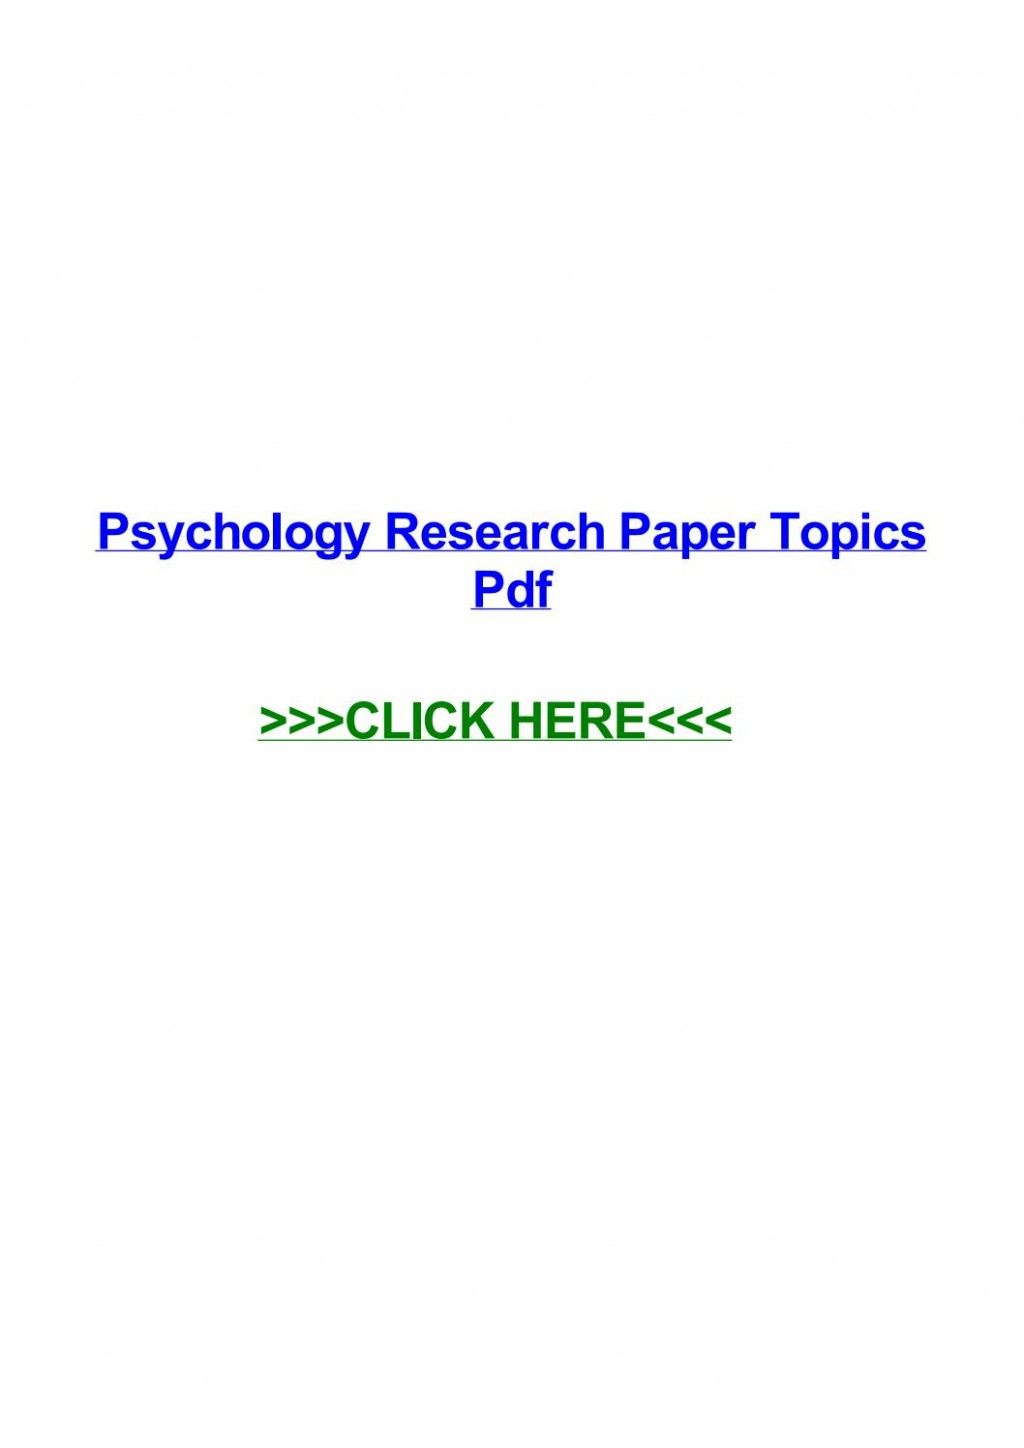 017 Page 1 Research Paper Psychology Striking Topics On Dreams Depression For High School Students Large